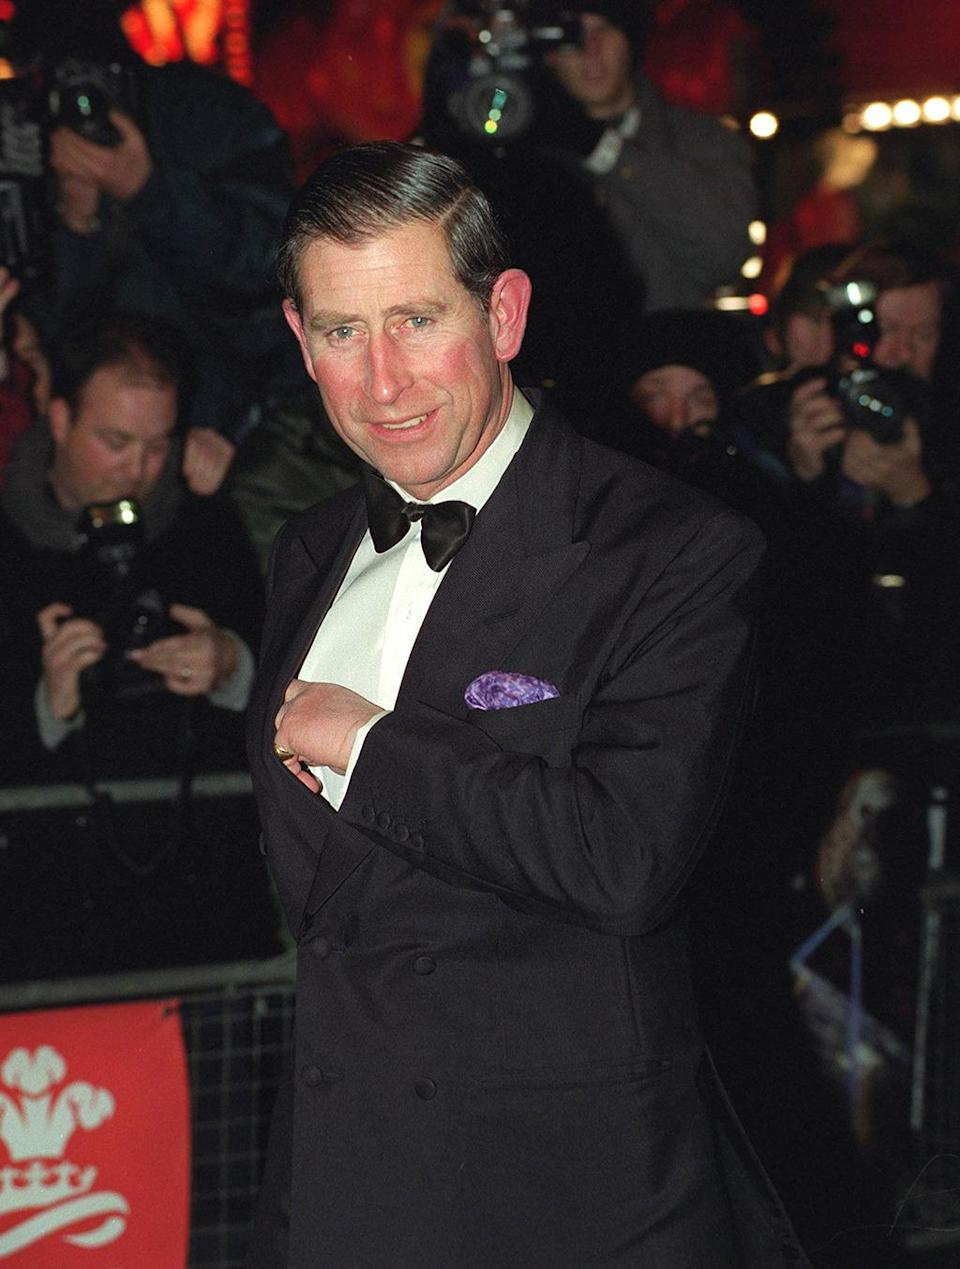 <p>Prince Charles attends the royal premiere of <i>Star Trek: First Contact </i>on Dec. 10, 1996. <i>(Photo: Tim Graham/Getty Images)</i></p>